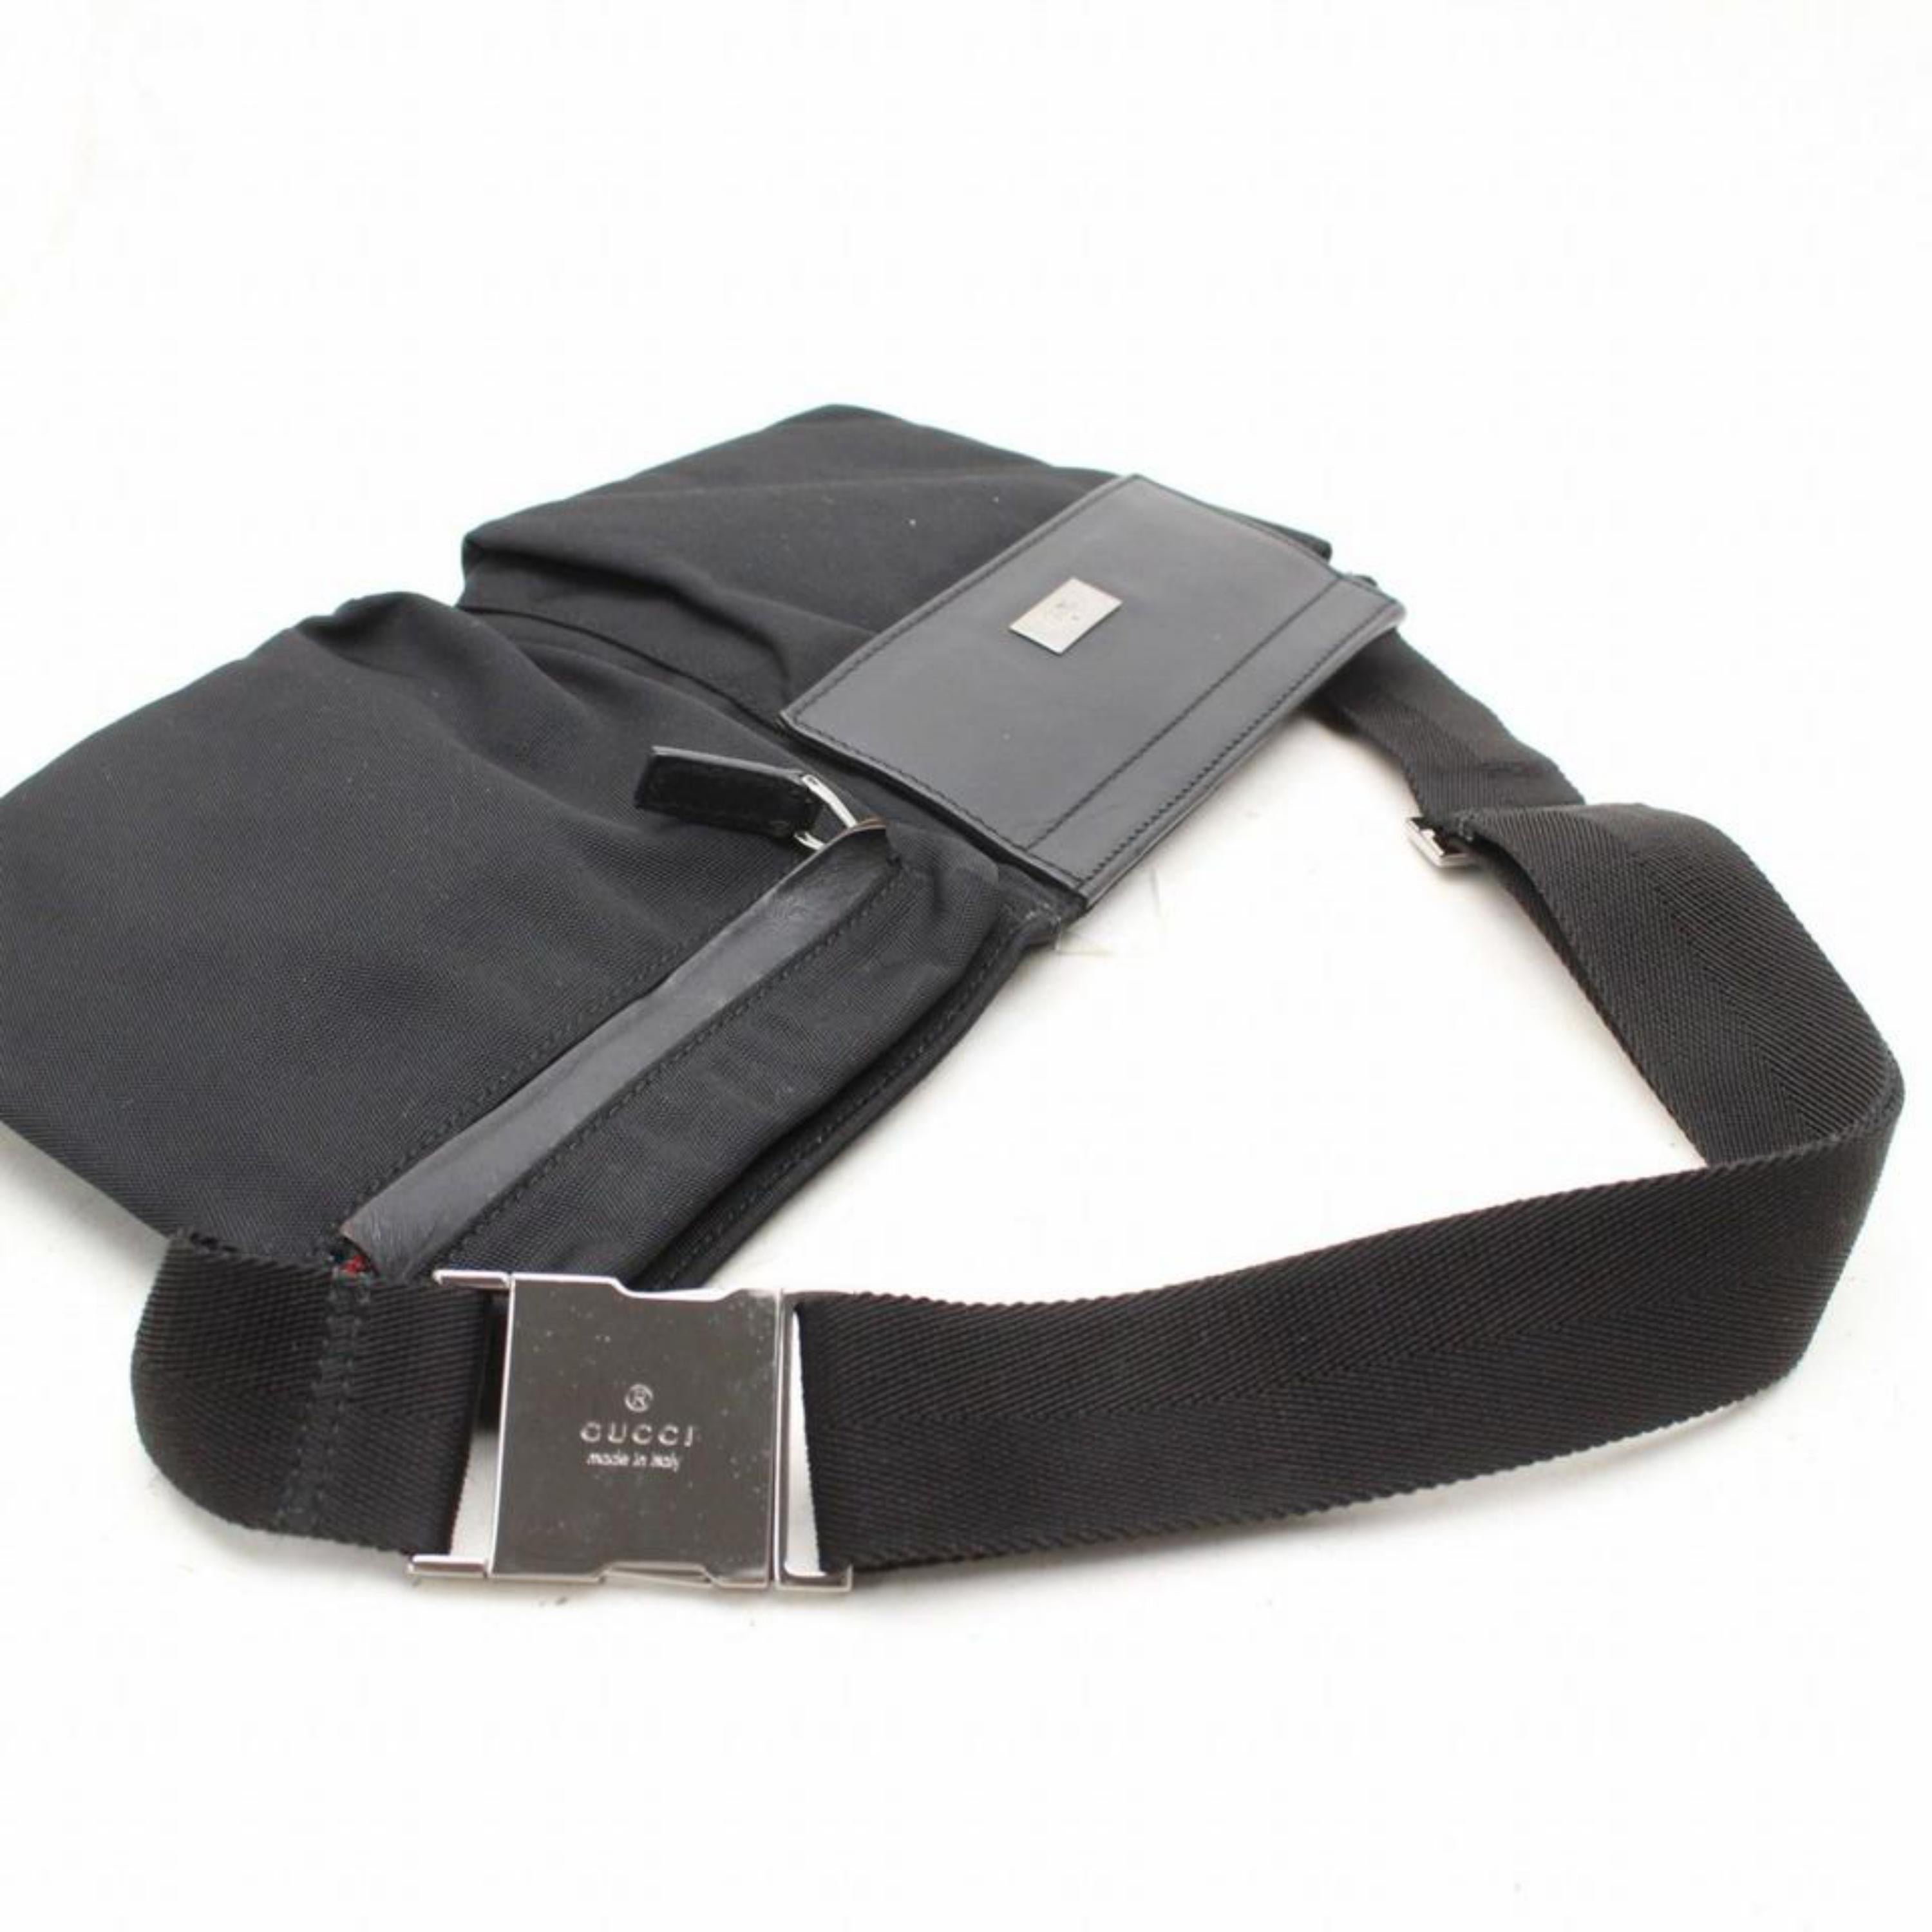 95e4b1ffcead Gucci Sherry Web Fanny Pack Waist Pouch 868544 Black Nylon Cross Body Bag  For Sale at 1stdibs